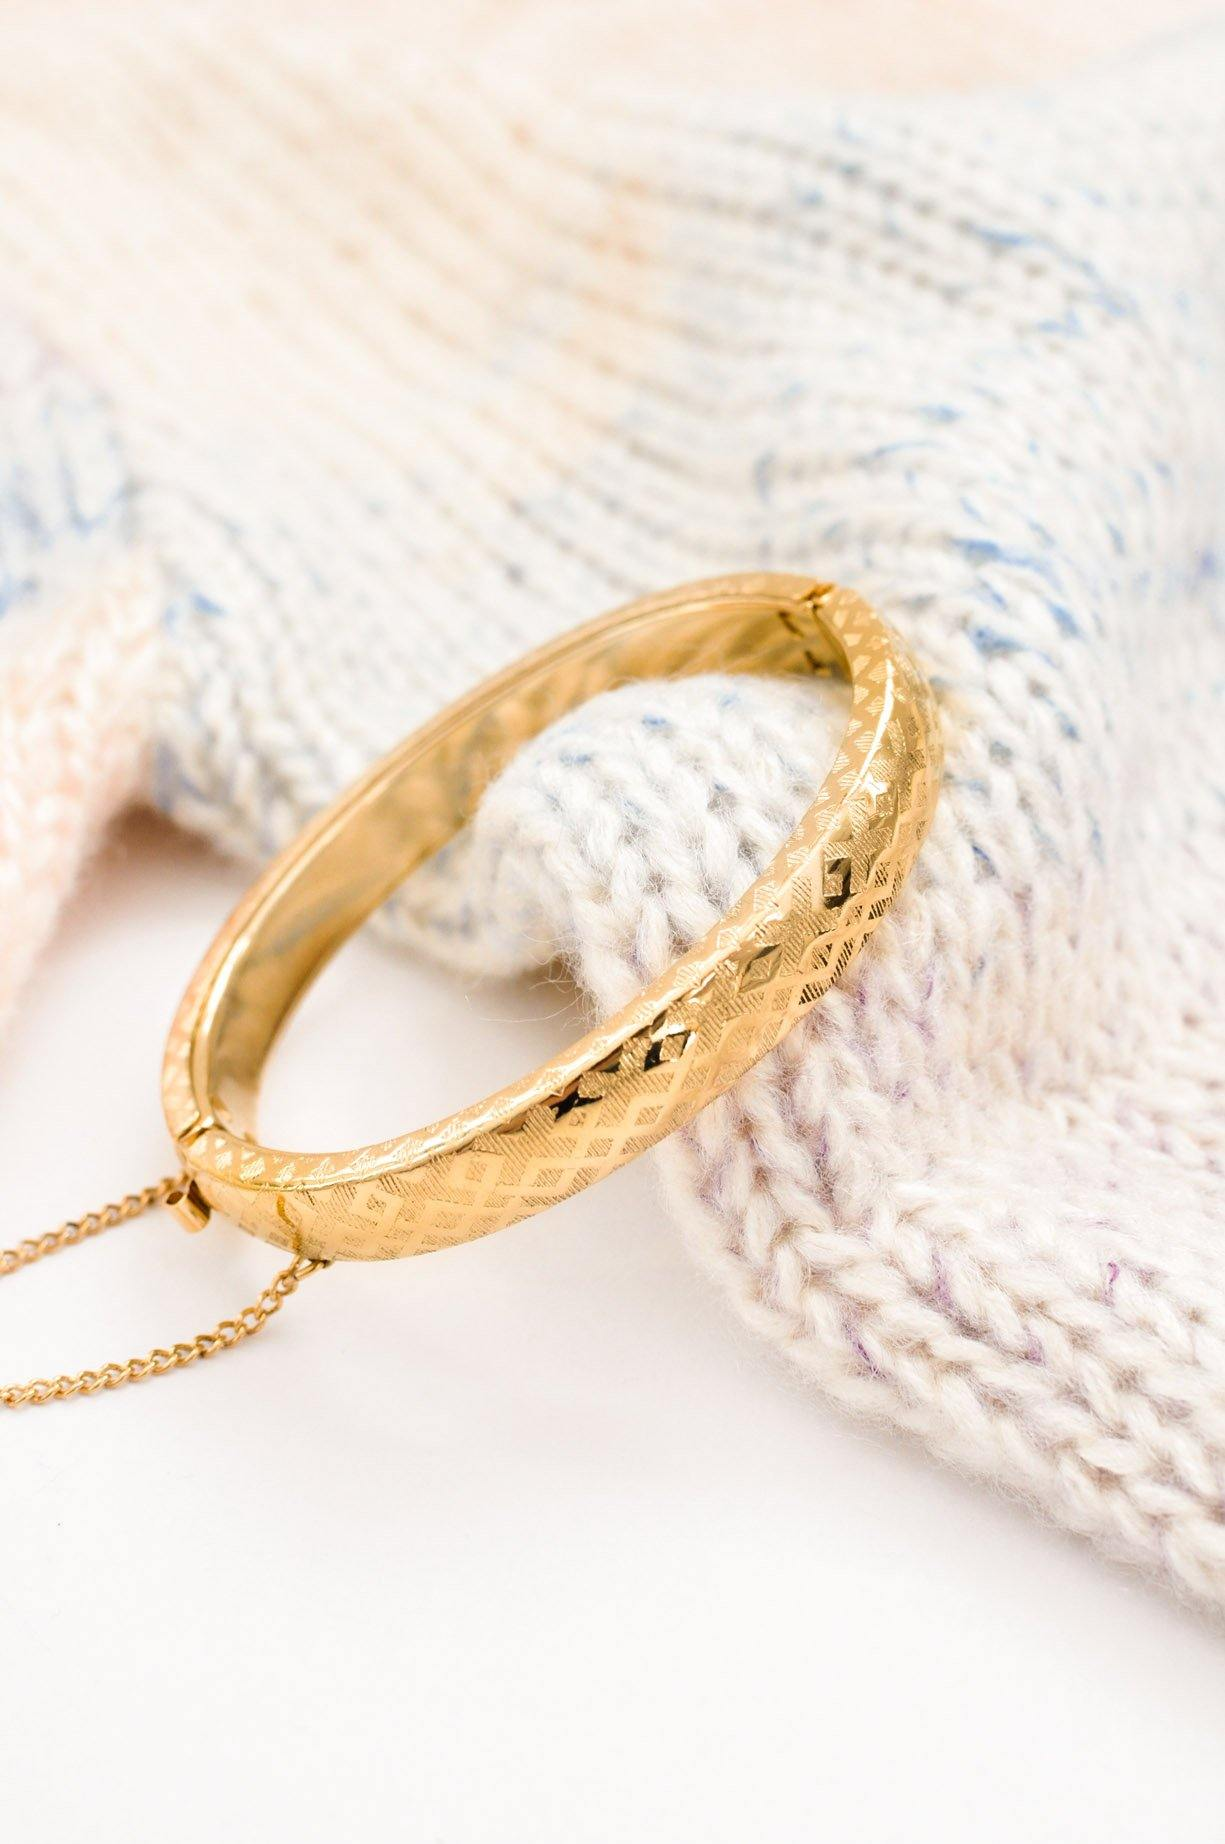 Etched Oval Bangle Bracelet